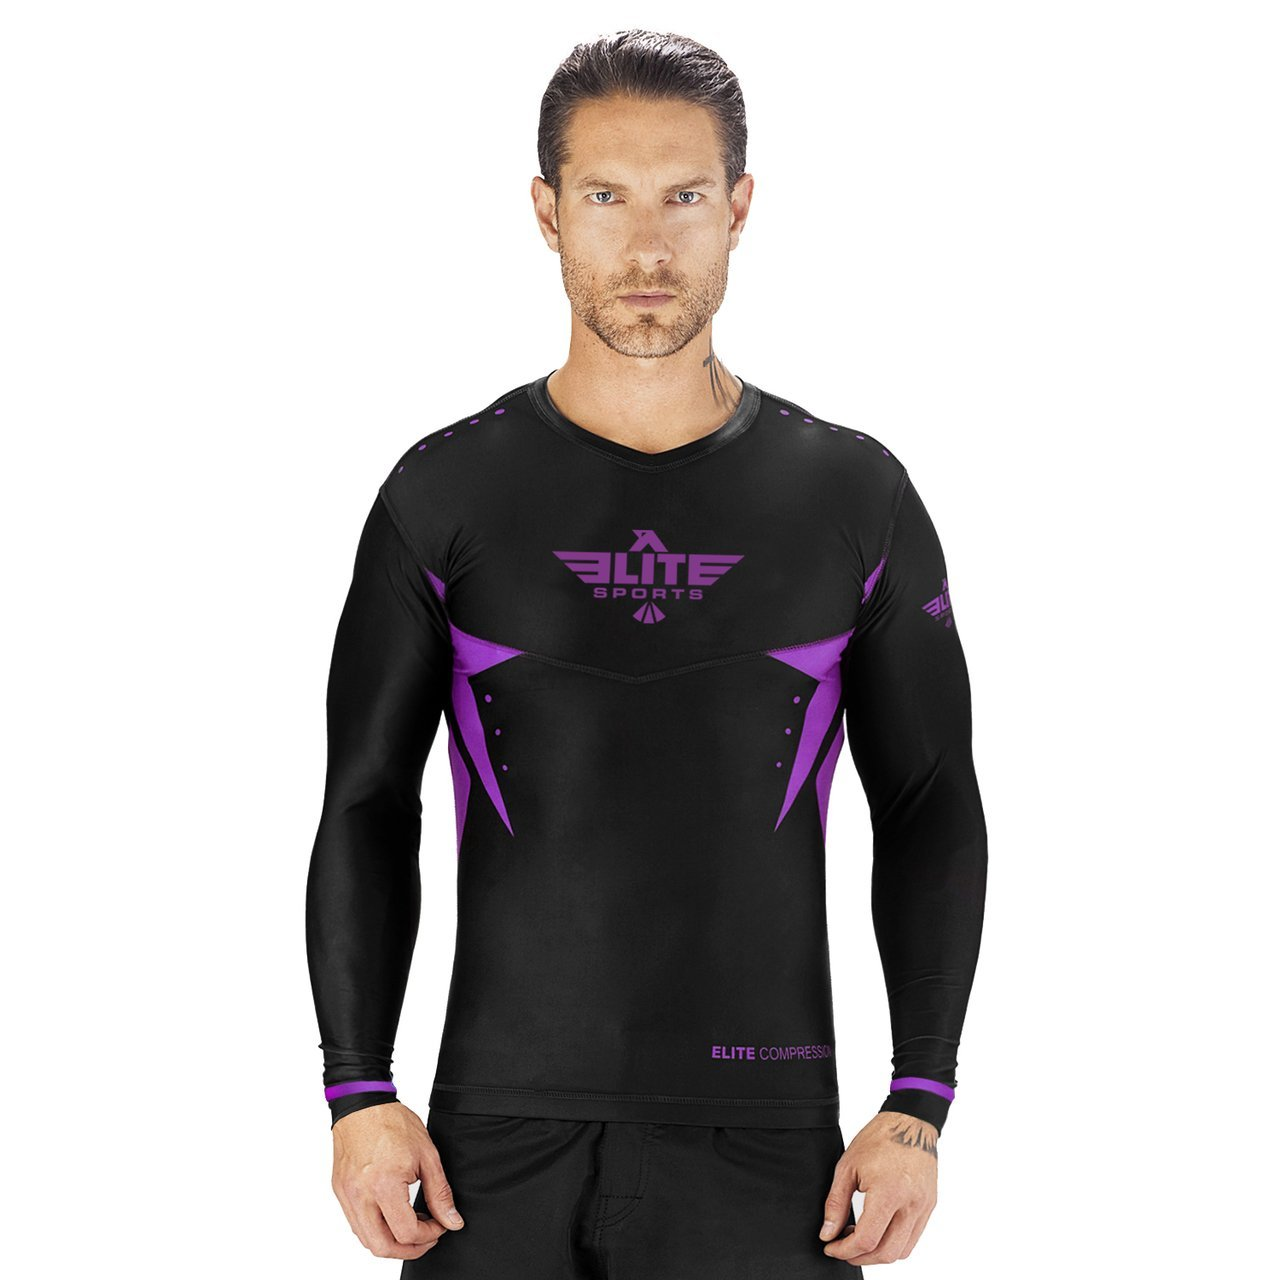 Load image into Gallery viewer, Elite Sports Star Series Sublimation Black/Purple Long Sleeve Brazilian Jiu Jitsu BJJ Rash Guard